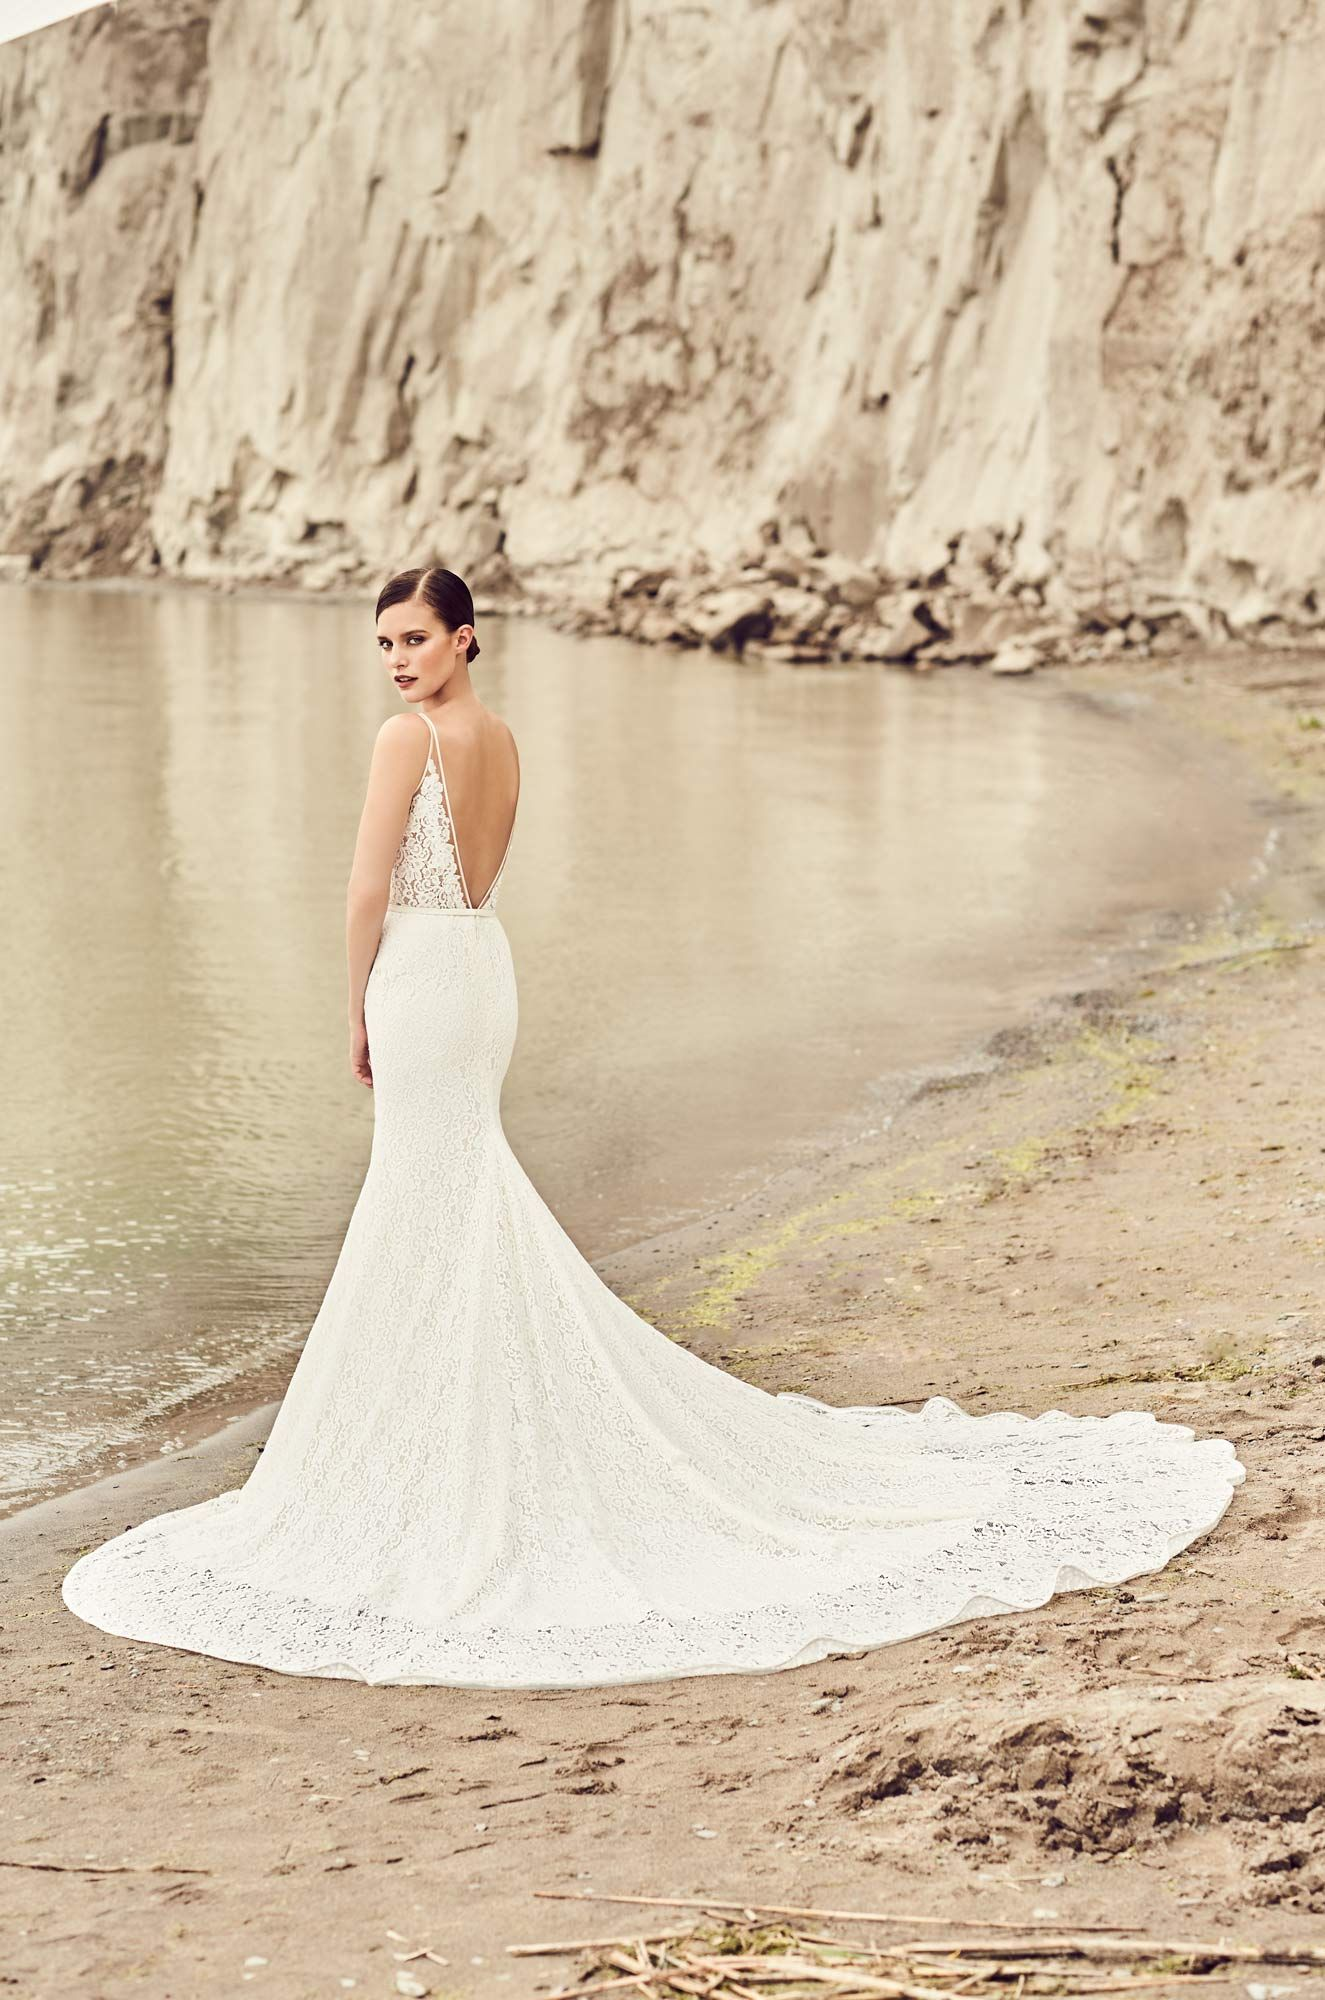 Mikaellabridal style vneckline lace bodice lined in nude